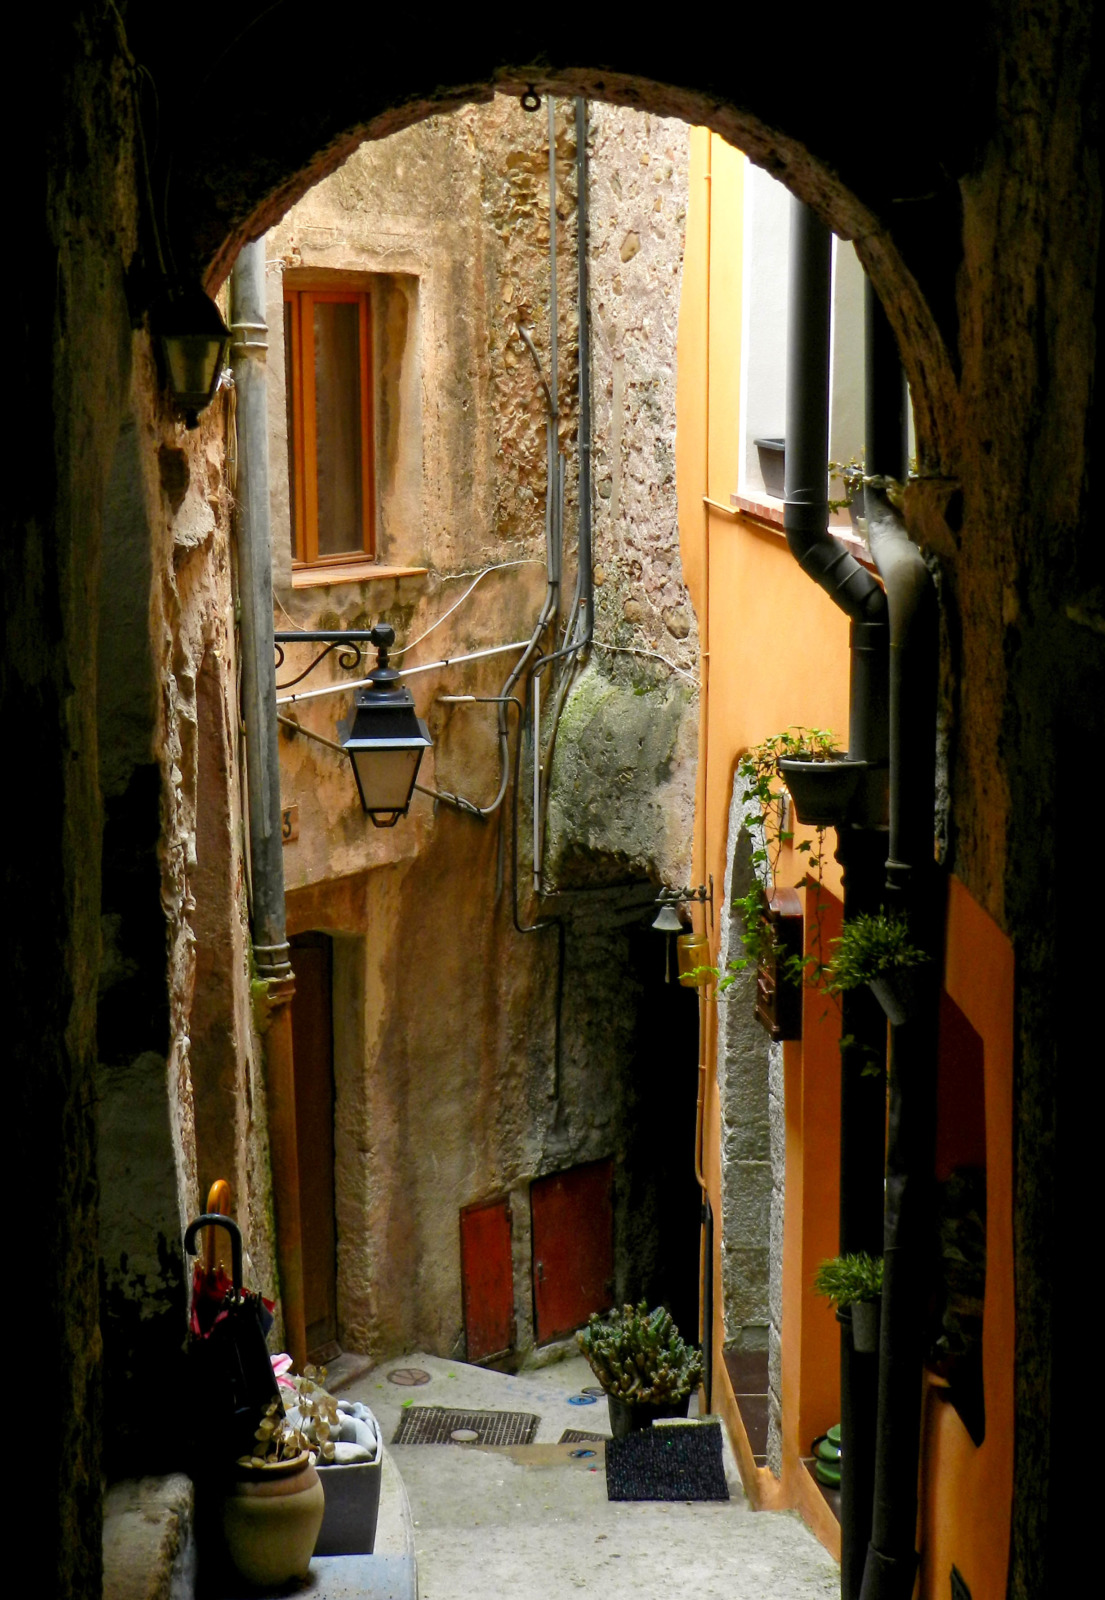 Roquebrune old street © Guerinf - licence [CC BY-SA 4.0] from Wikimedia Commons